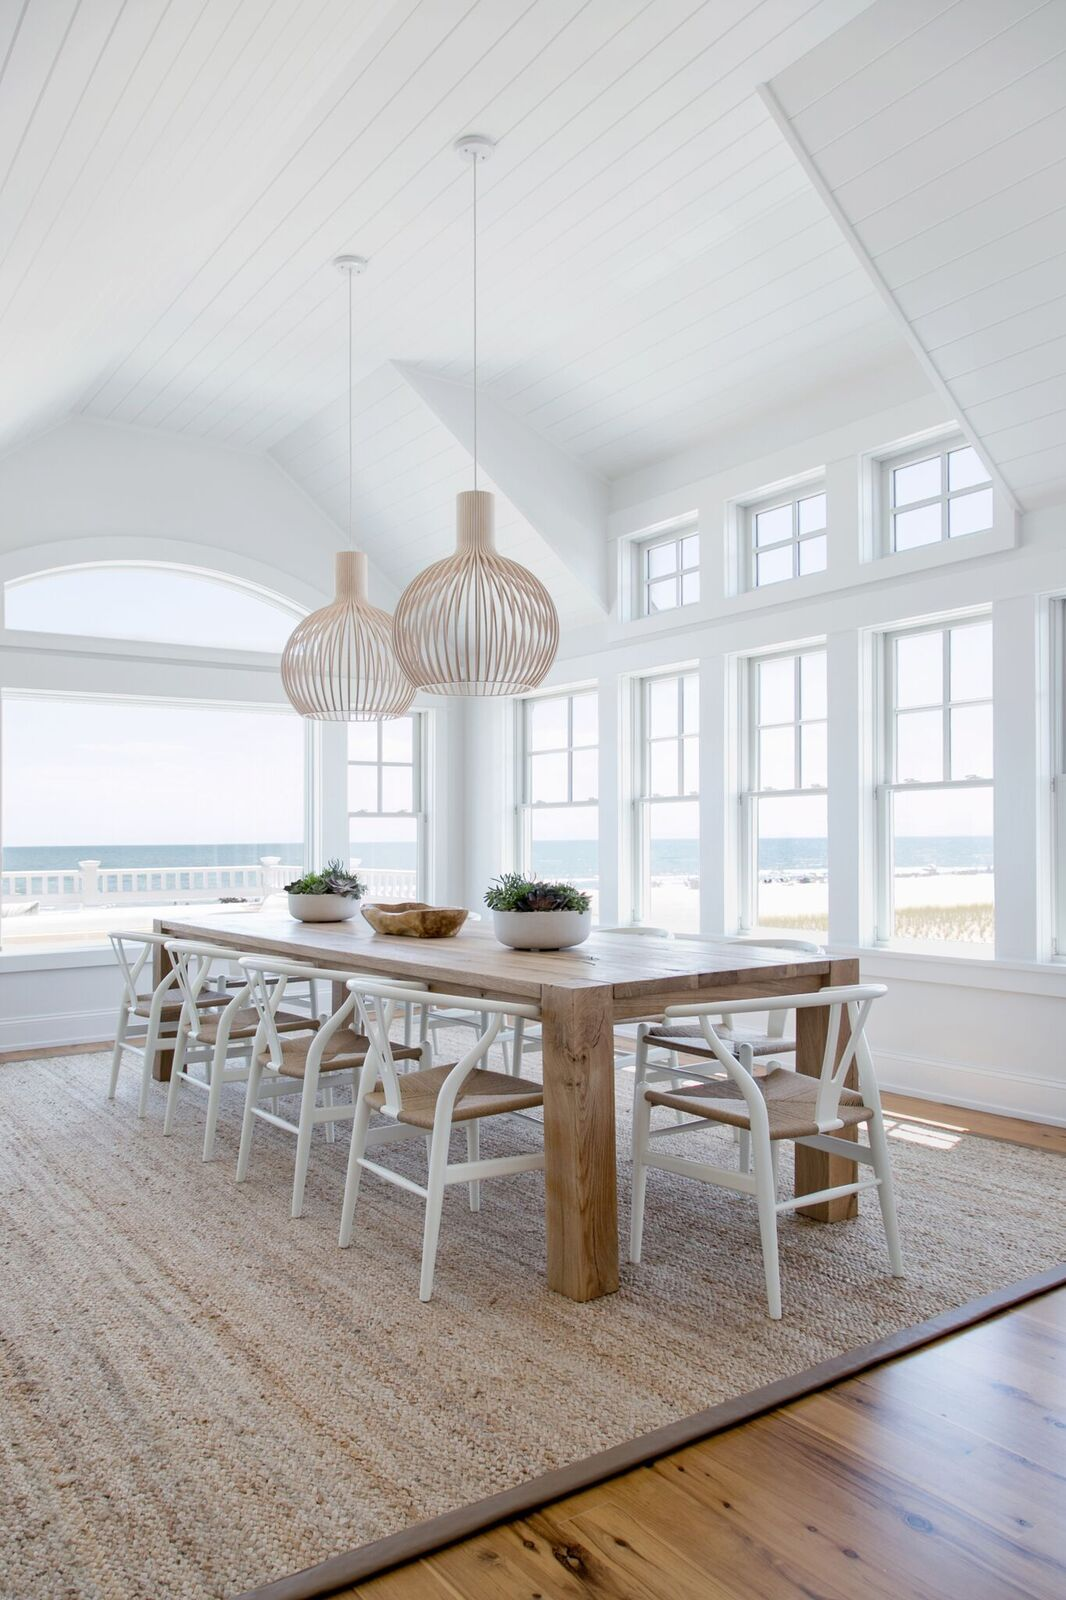 This Seaside House Is Giving Us So Many Beachy Decor Ideas Domino Beach House Dining Room House Interior Dining Room Design